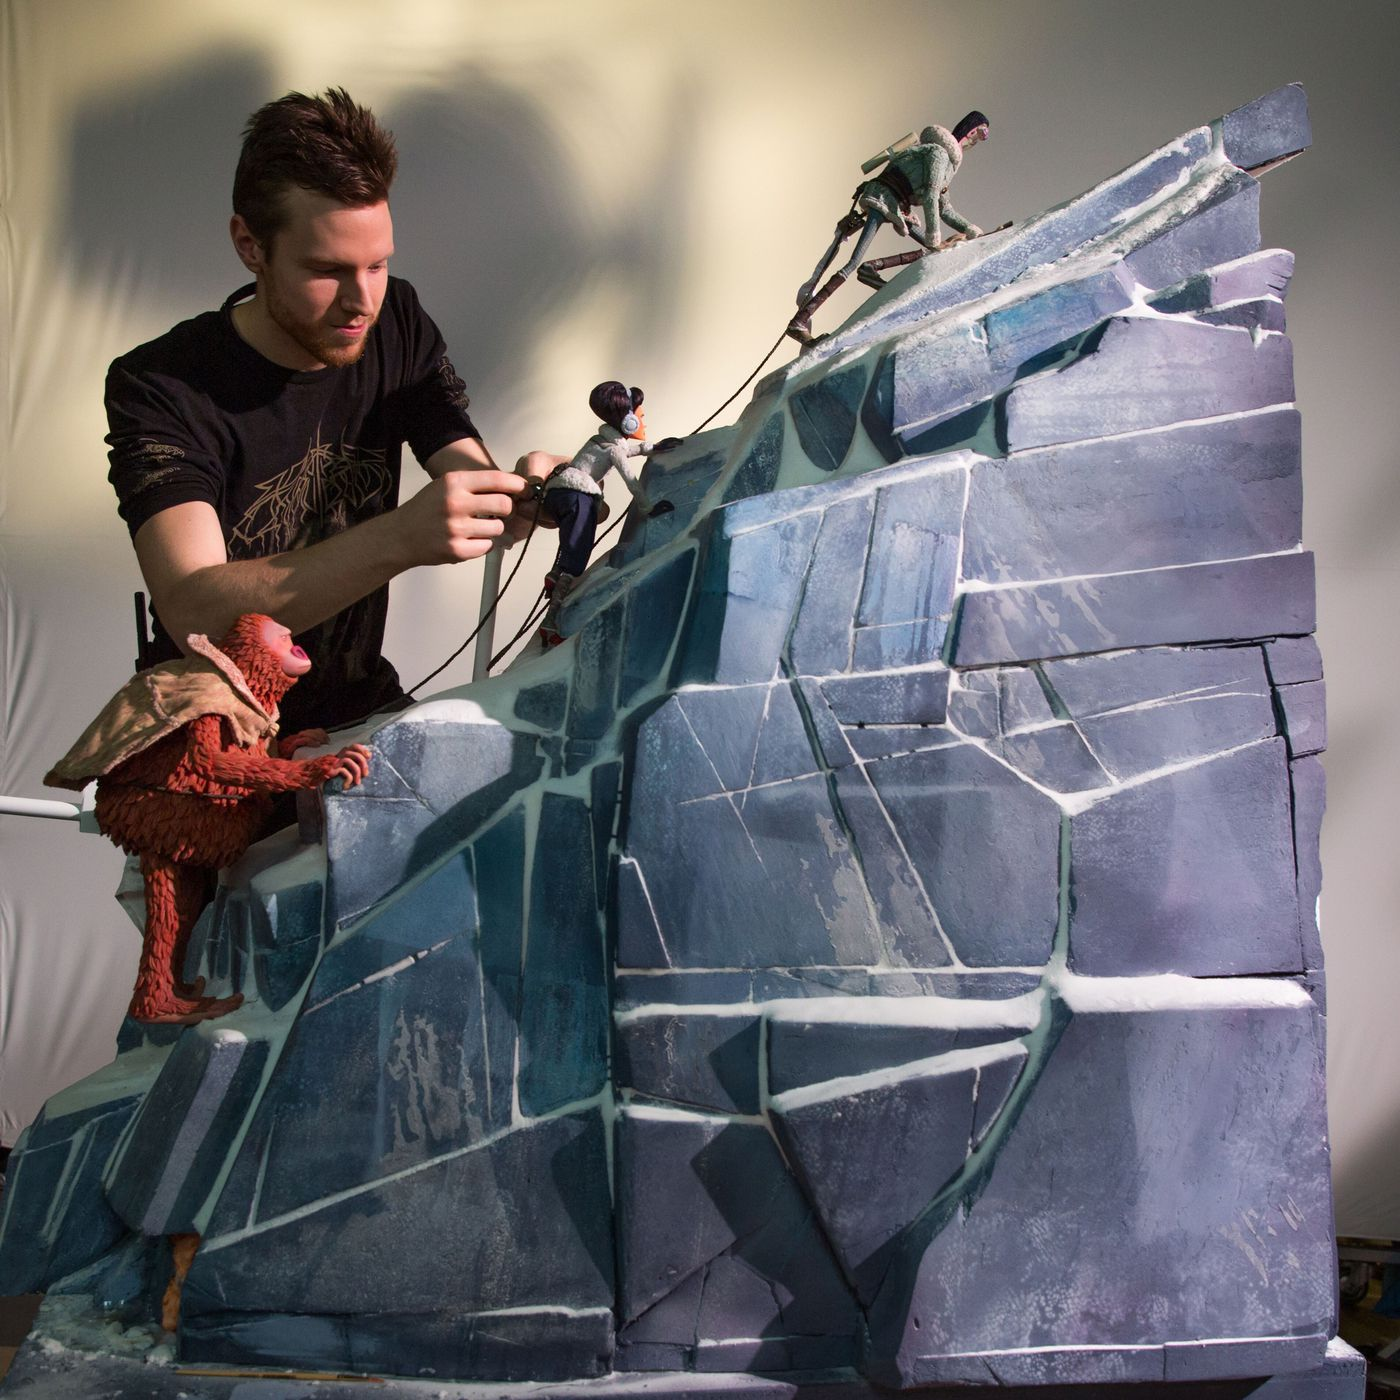 Behind The Scenes At Laika An Exclusive Look At The Stop Motion Process The Verge